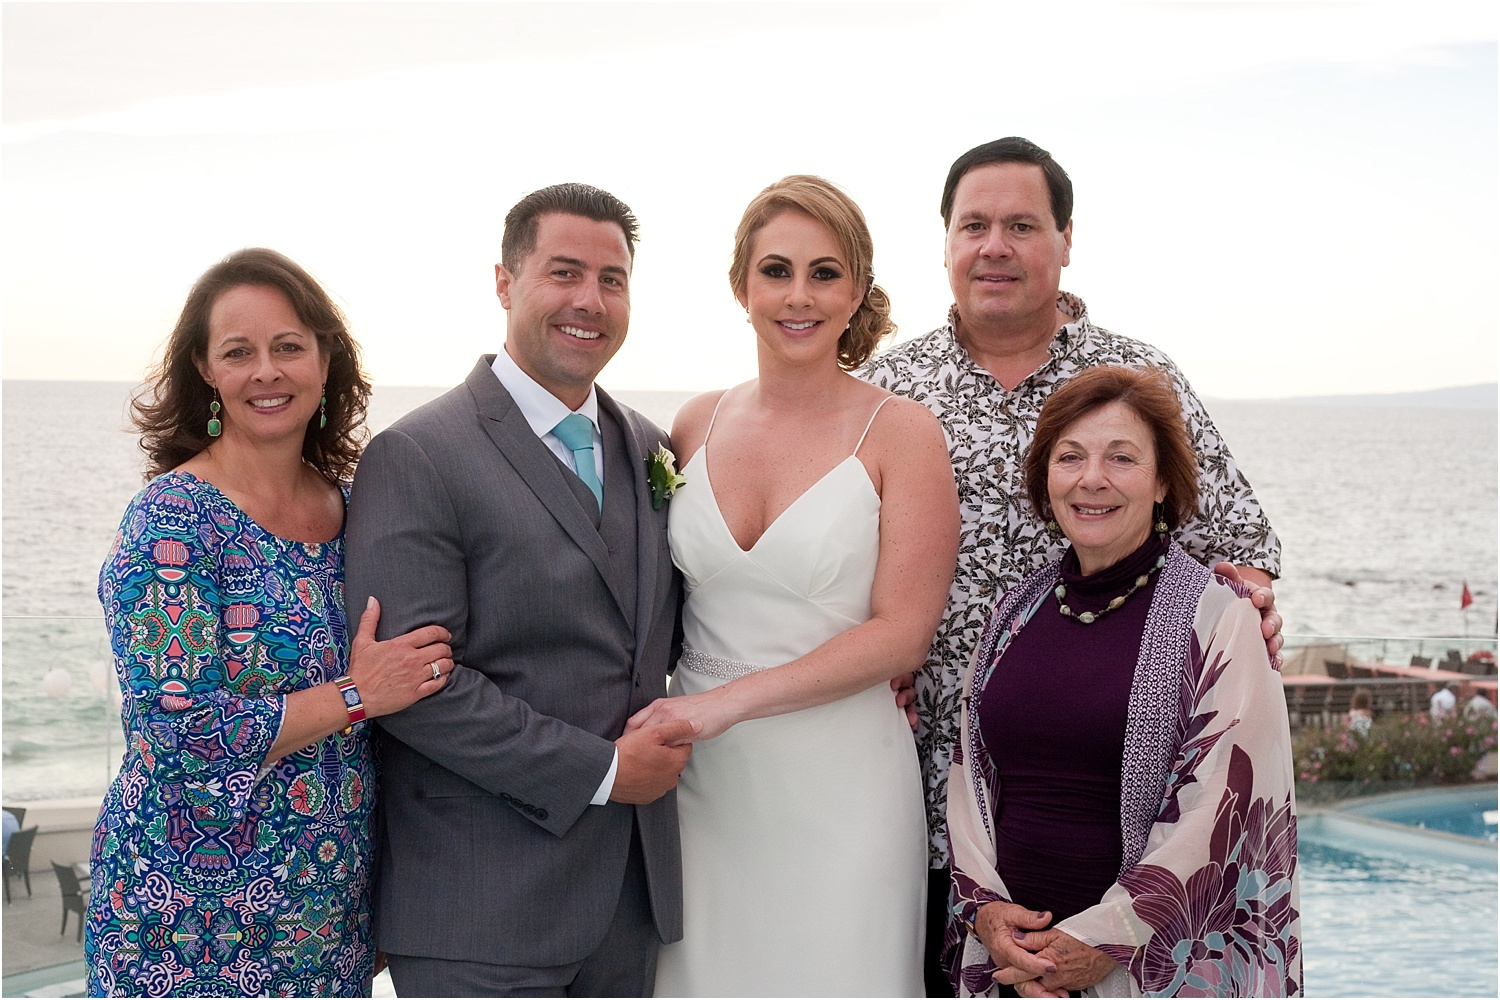 How to photograph family and bridal party portraits quickly at weddings 10